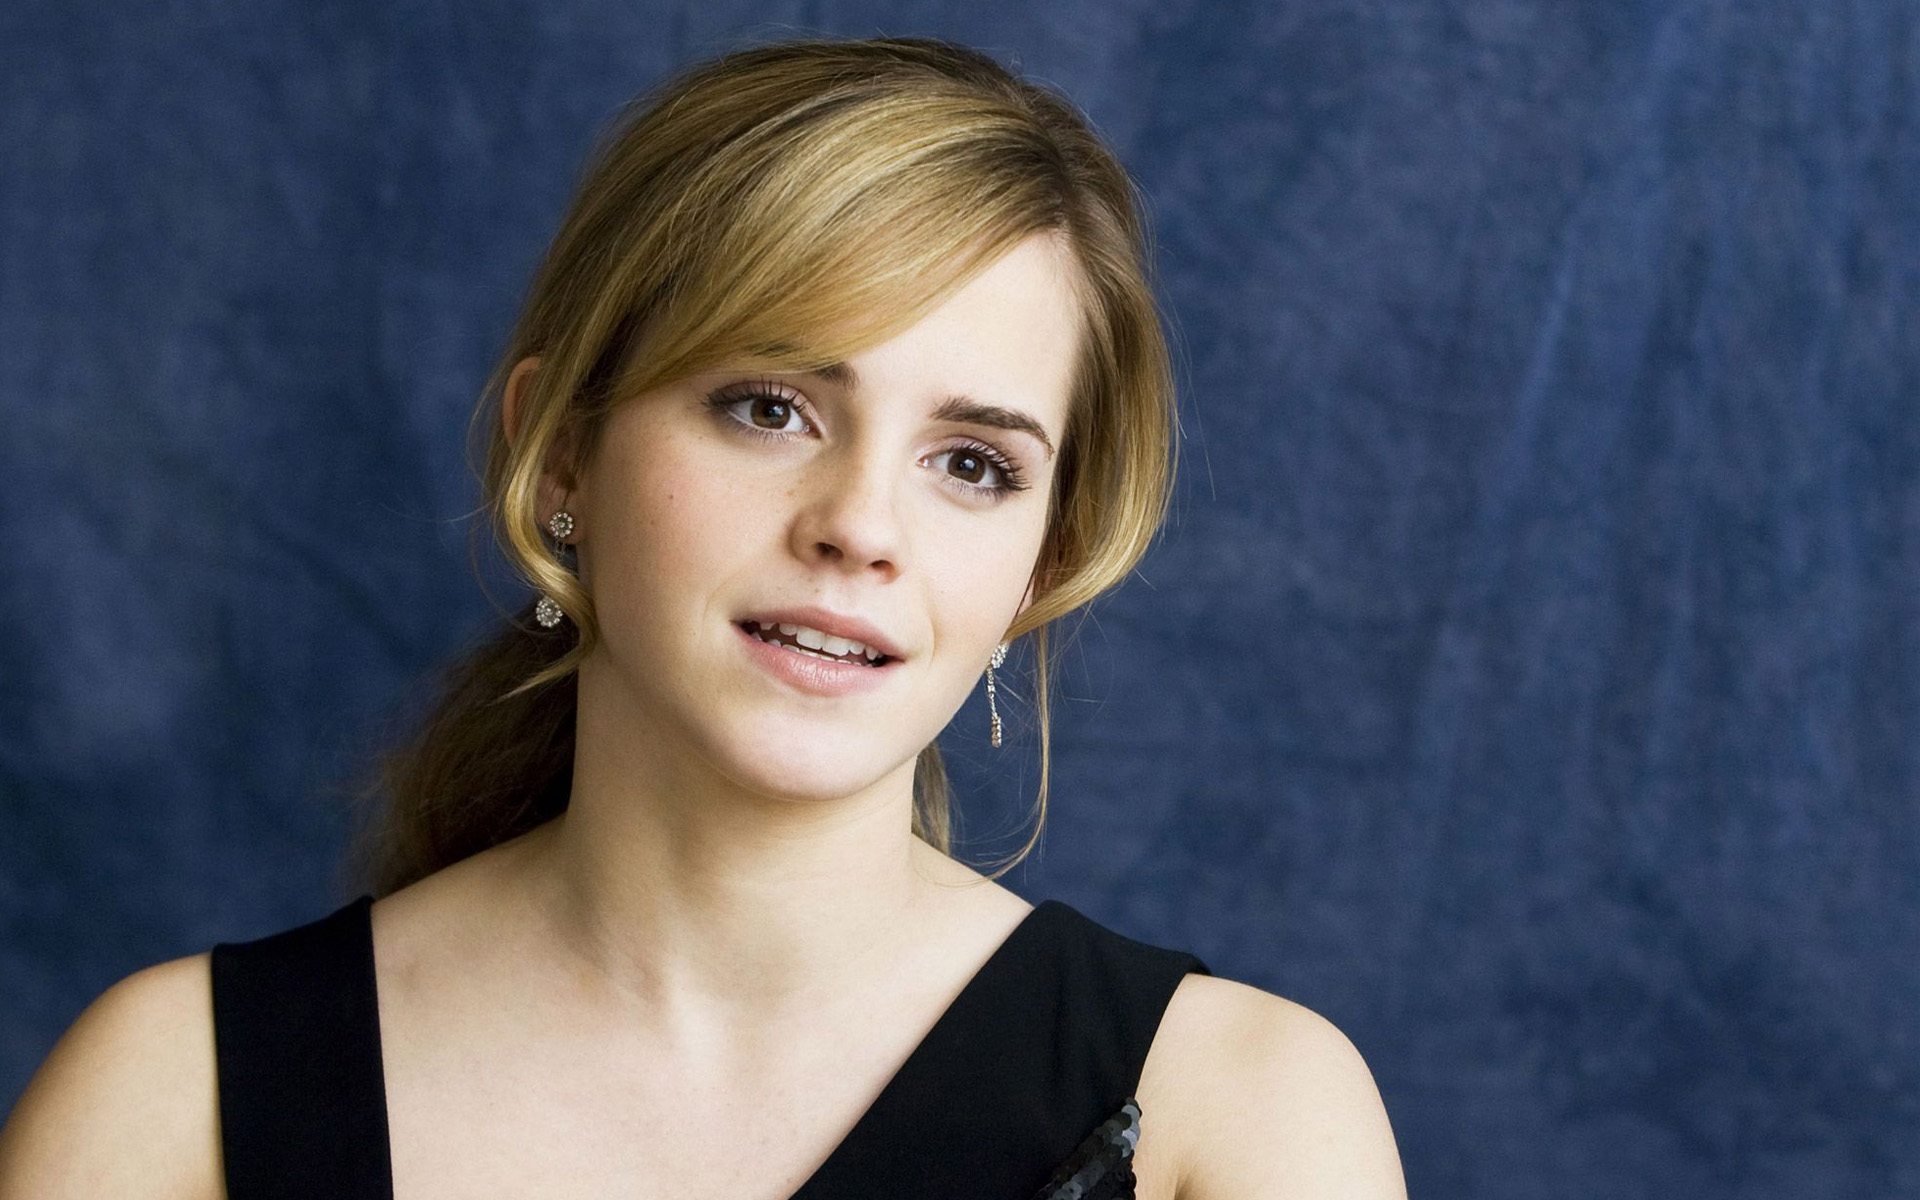 Emma Watson at Tale of Despereaux Wide Screen 653.68 Kb